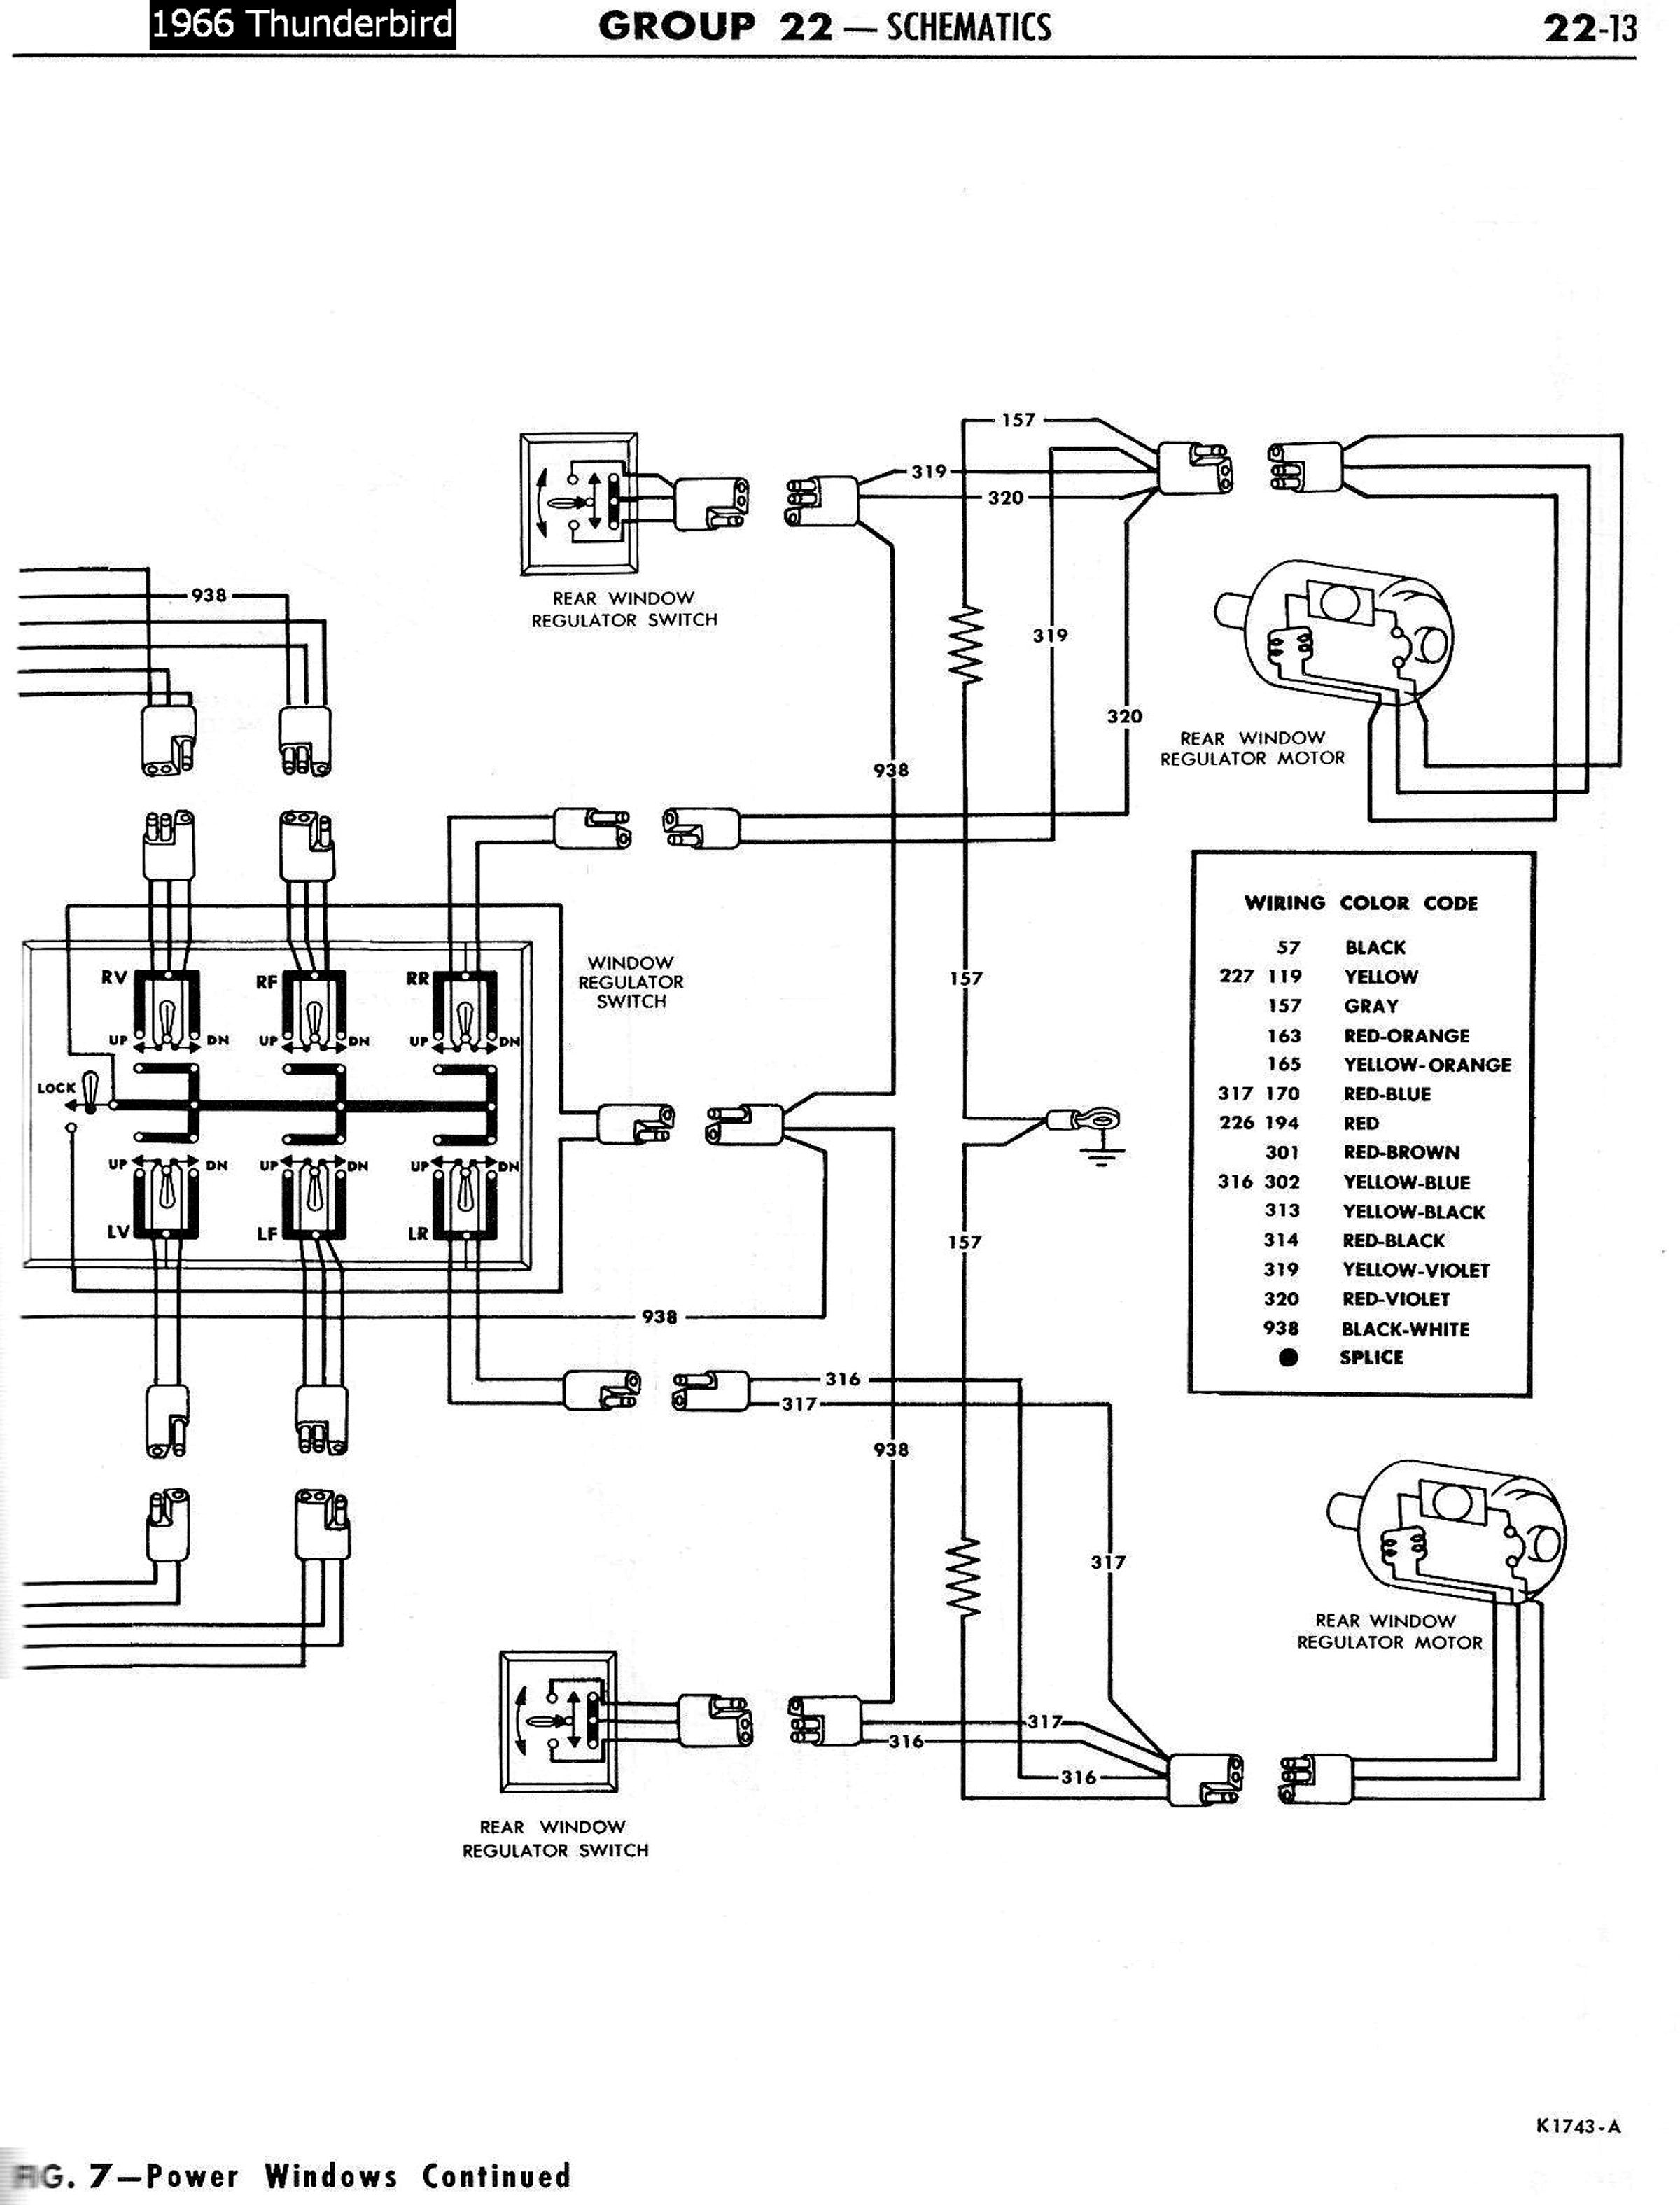 66TbirdPowerWindowsSchematicRight 1958 68 ford electrical schematics 1957 Ford Wiring Diagram at fashall.co